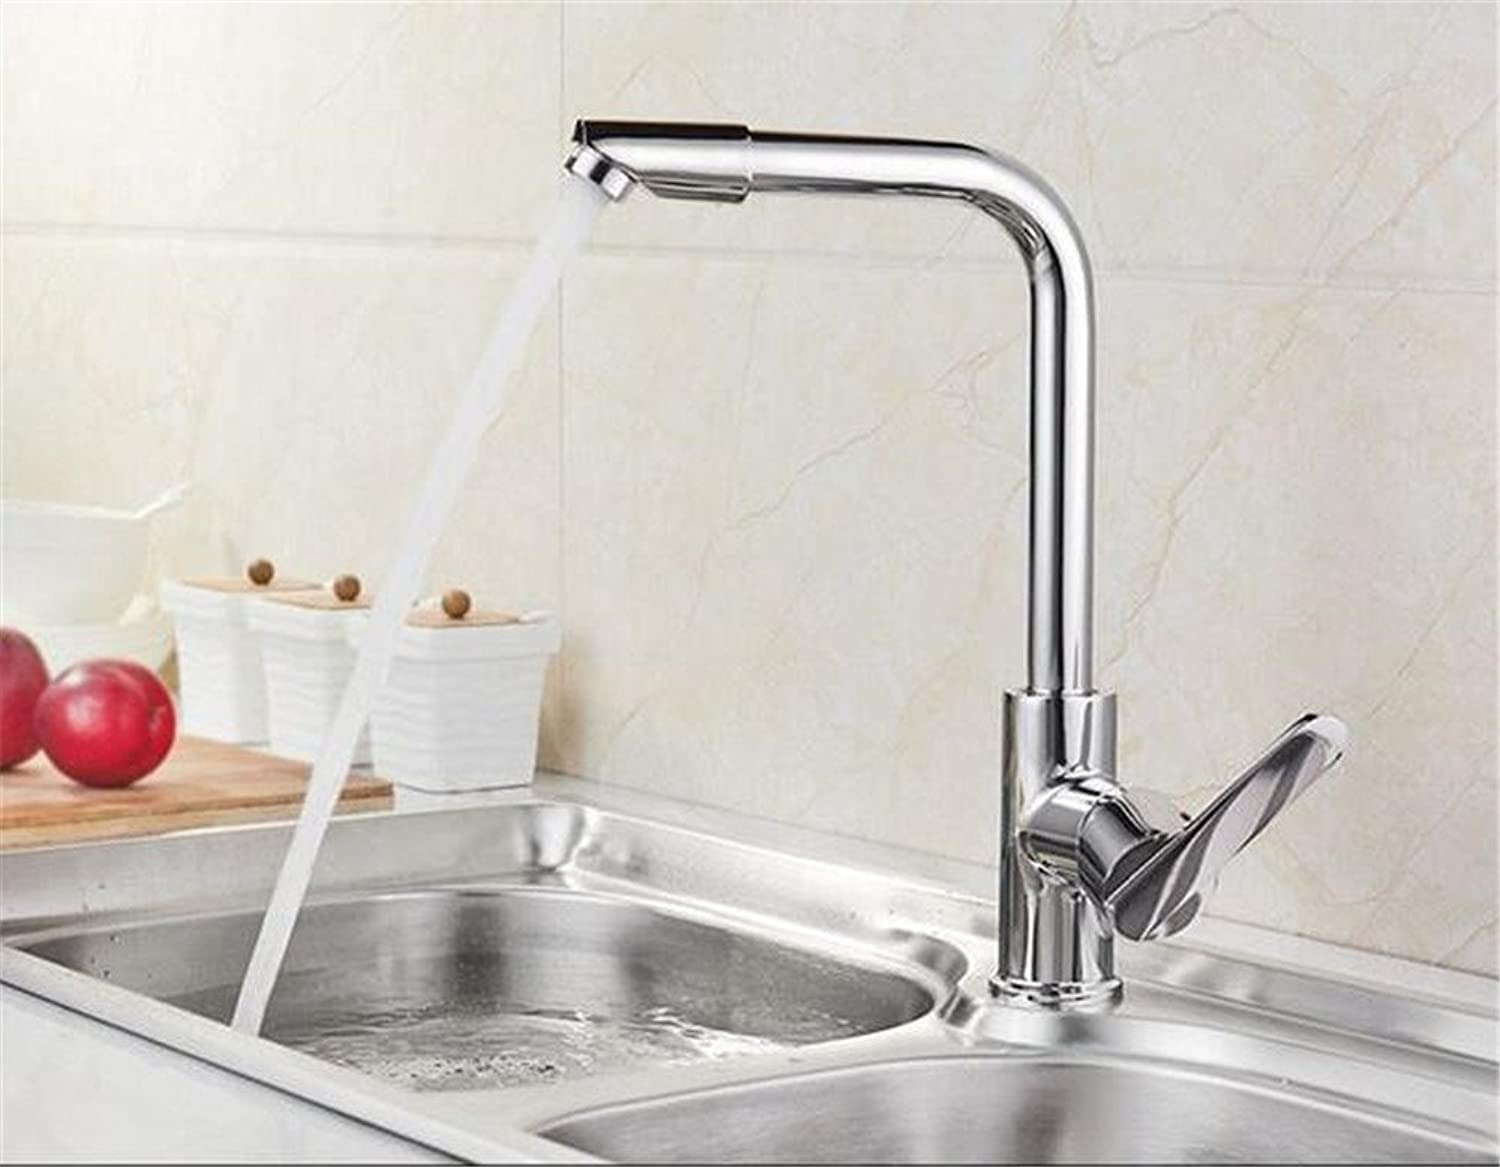 Decorry 304 Cold Kitchen Faucet Mixing Valve Member Hot and Cold Water All Copper Kitchen Sink Faucet Ceramic Valve Core, Cold Movable Head Section 3